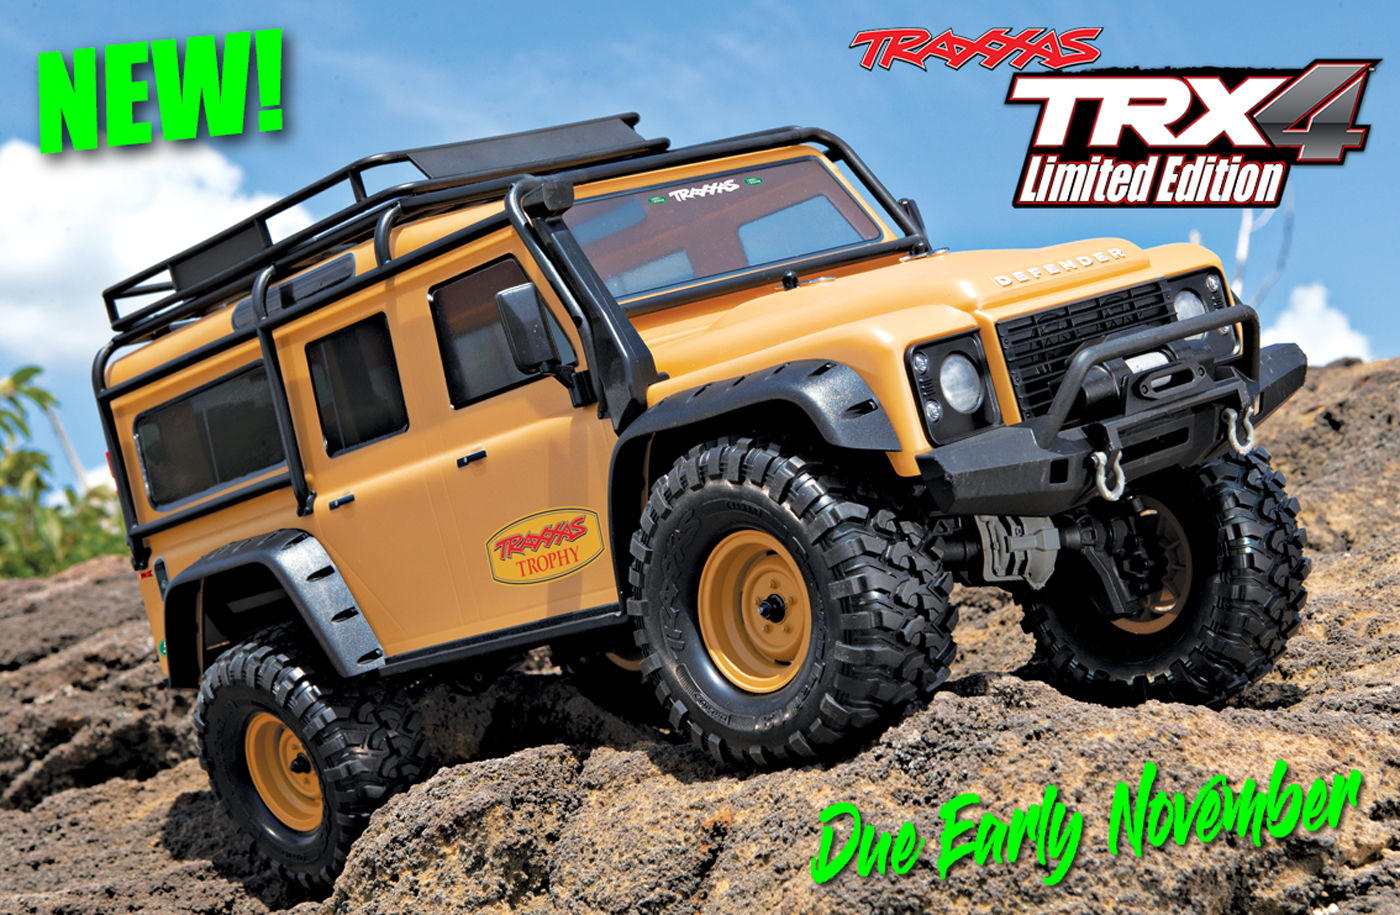 Traxxas Trx 4 Crawler Land Rover Defender 110 Tan Edition For Pre Sonic 150r Aggresso Matte Black Solo Order Only Sussex Model Centre Smc